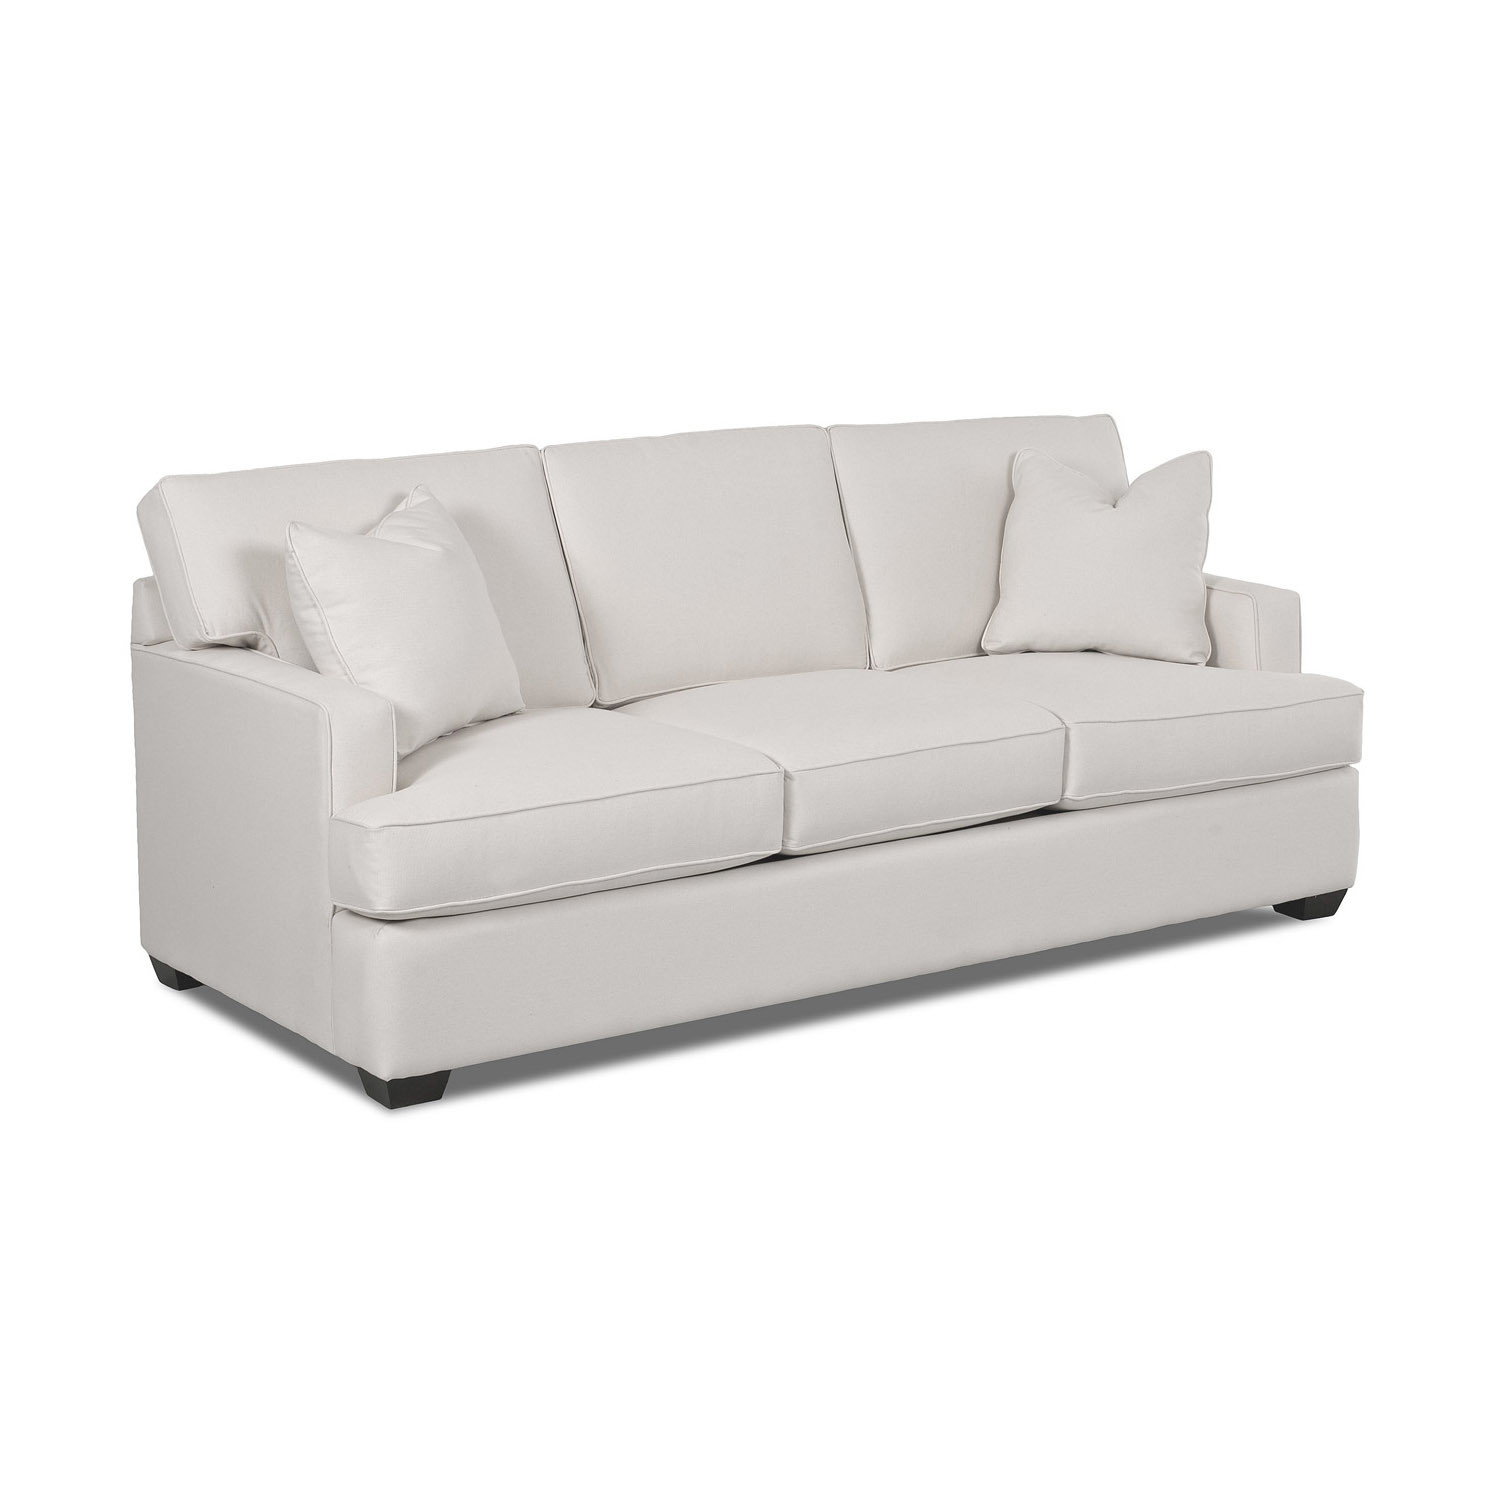 Best ideas about Wayfair Sectional Sofa . Save or Pin Wayfair Custom Upholstery Avery Sleeper Sofa & Reviews Now.